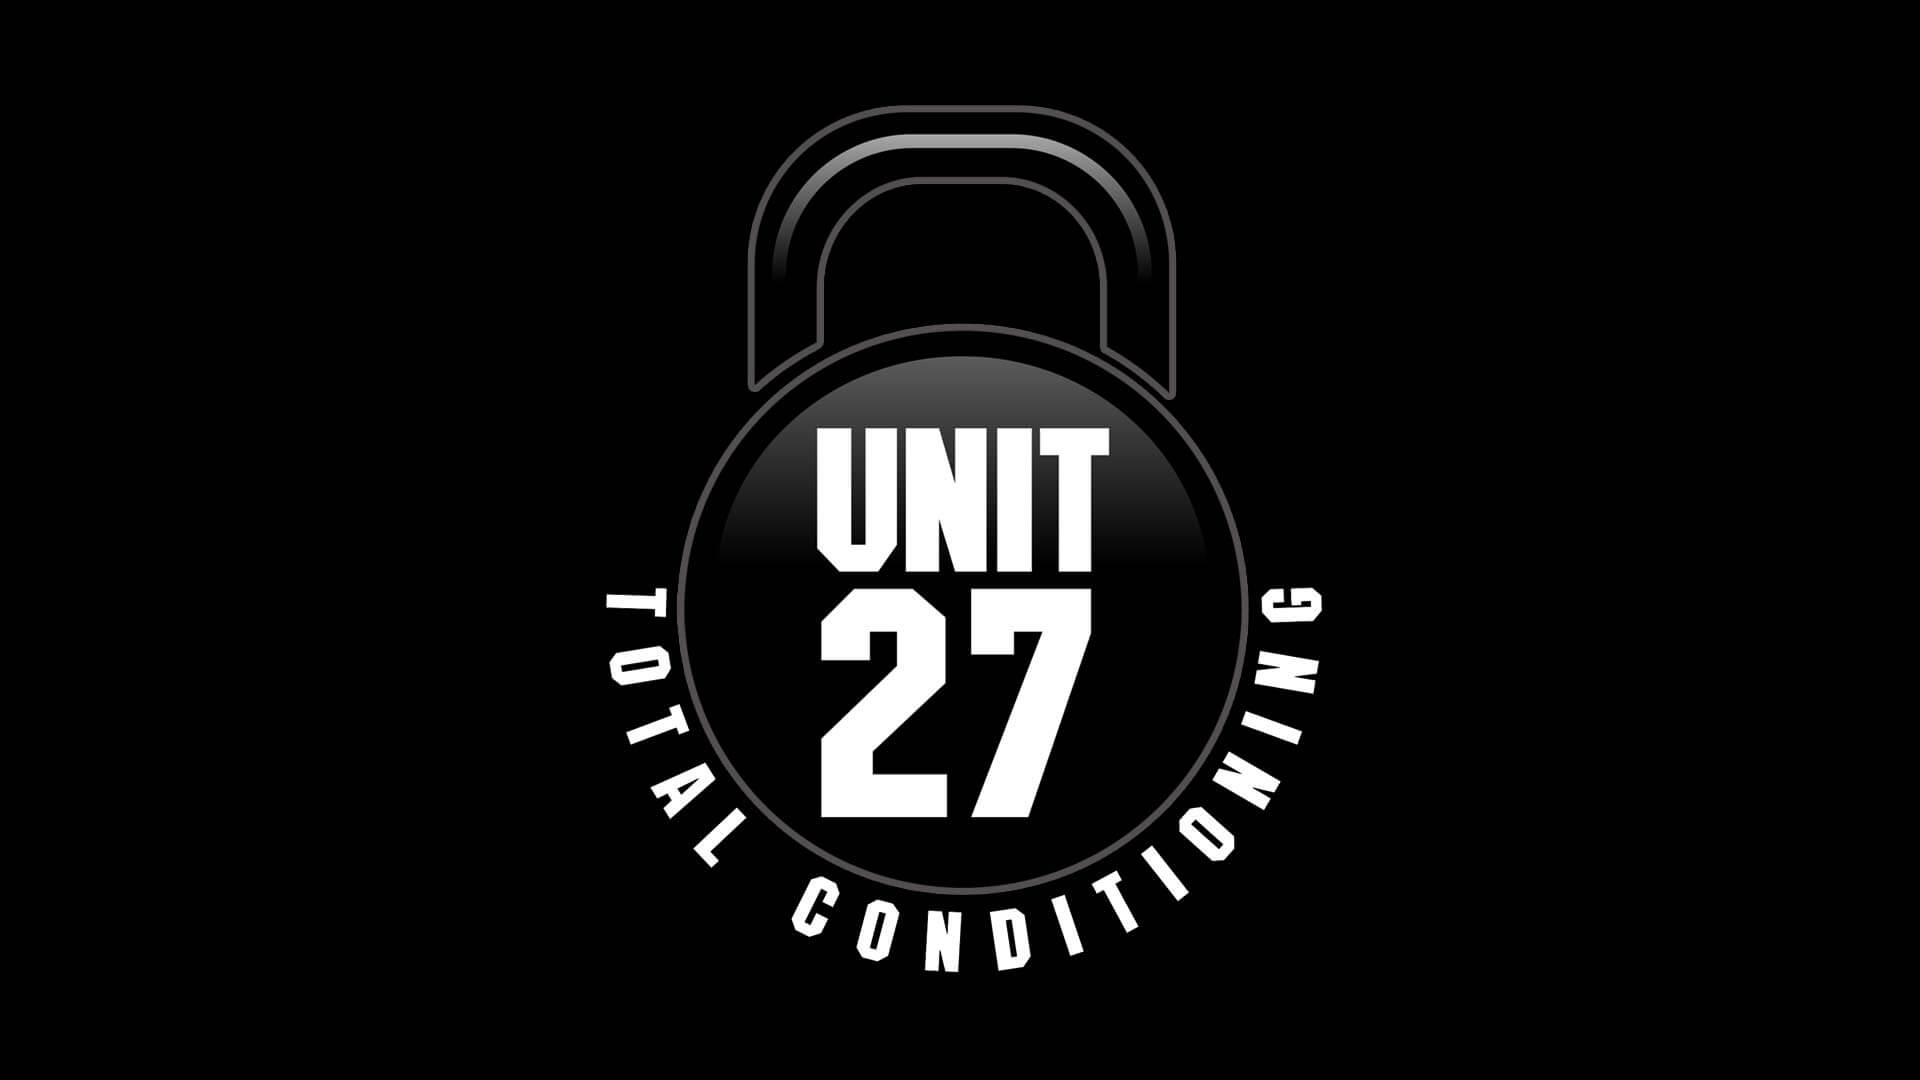 Unit 27 - Fitness, conditioning & weight loss training gym, Phuket, Thailand